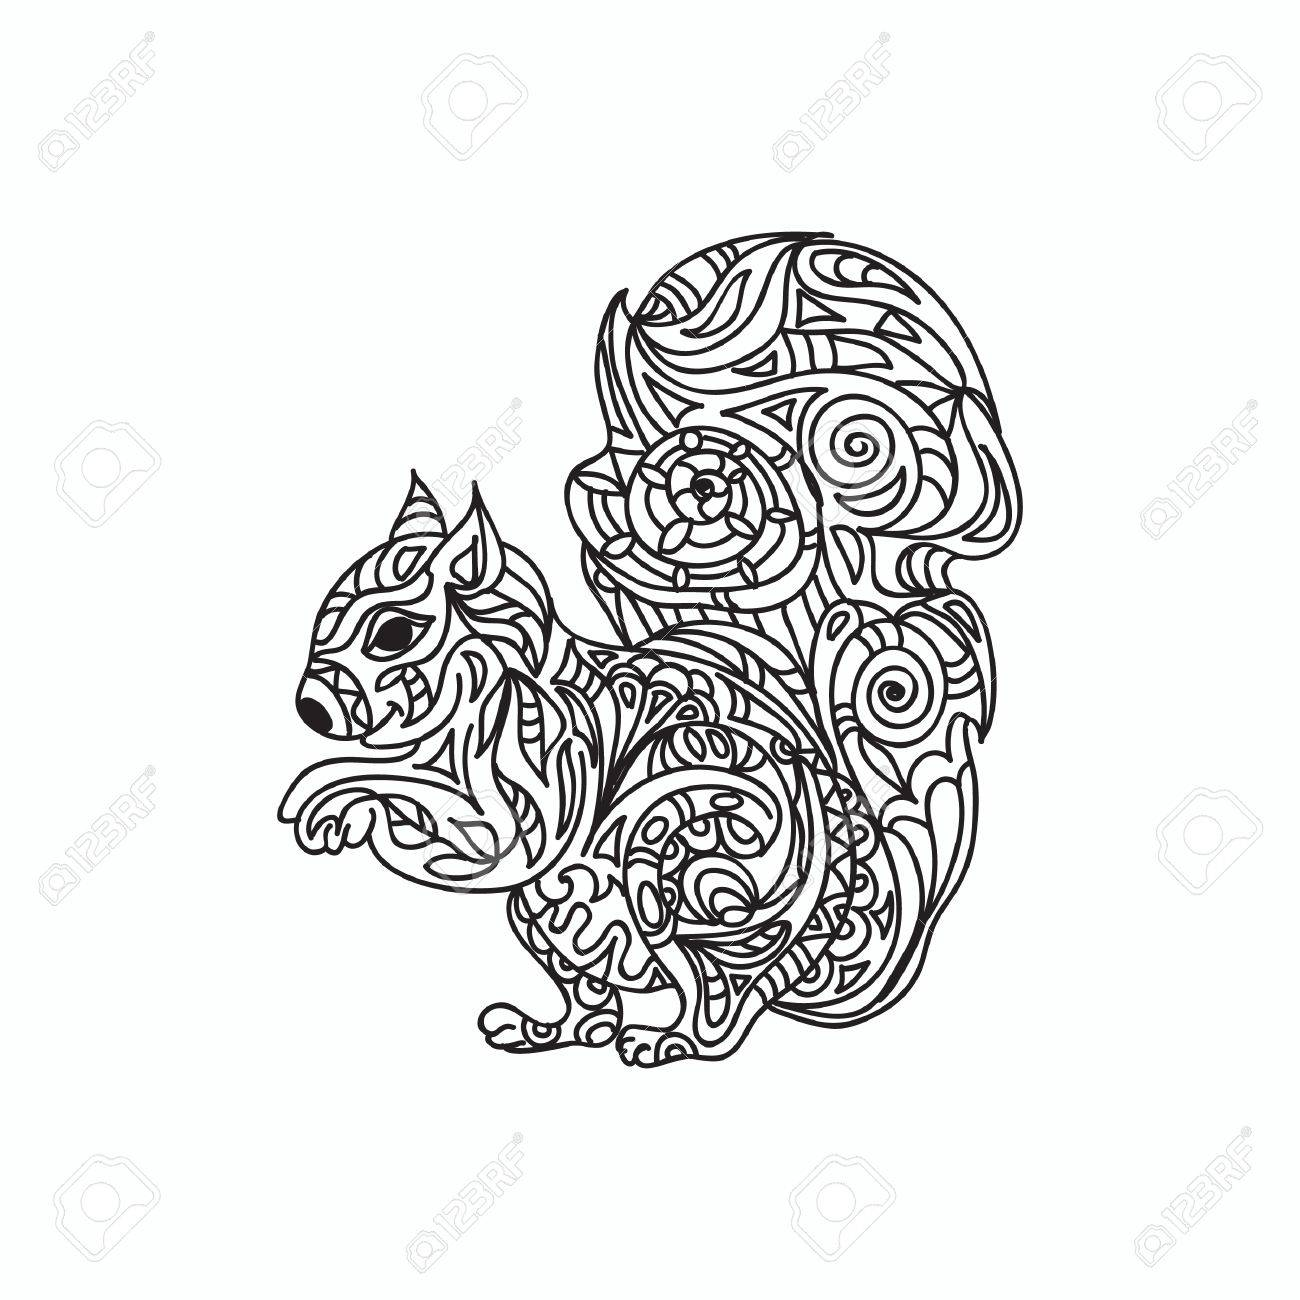 Squirrel Coloring Page Royalty Free Cliparts, Vectors, And Stock ...